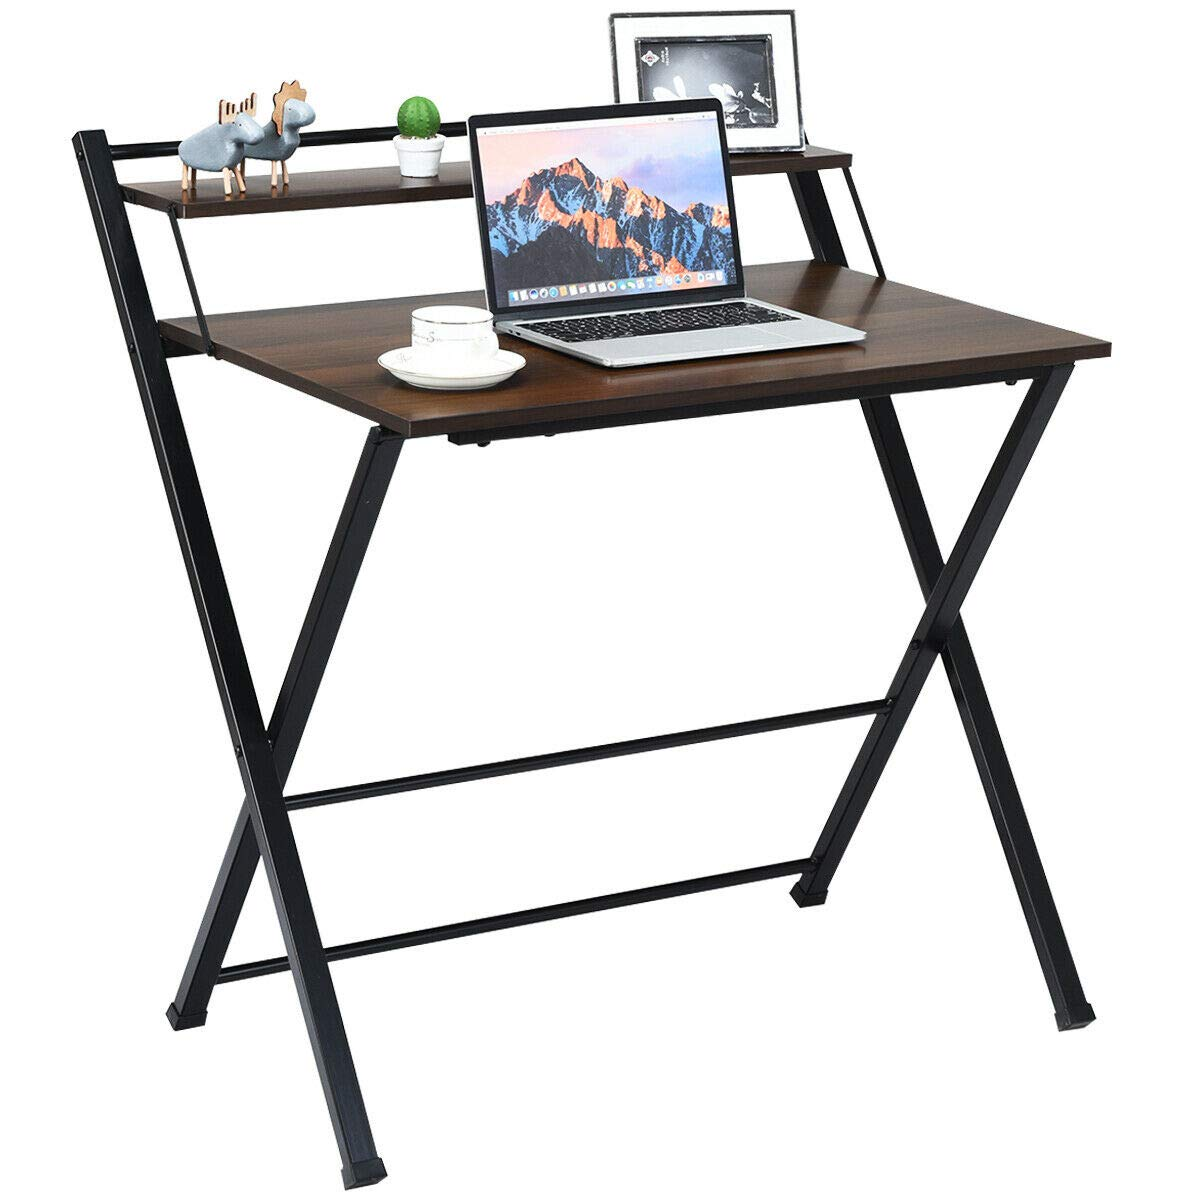 Tangkula Folding Computer Desk, Space-Saving Home Office Desk Working Table with Storage Shelf, Multipurpose Foldable Study Desk, Kid's Desk, Brown by Tangkula